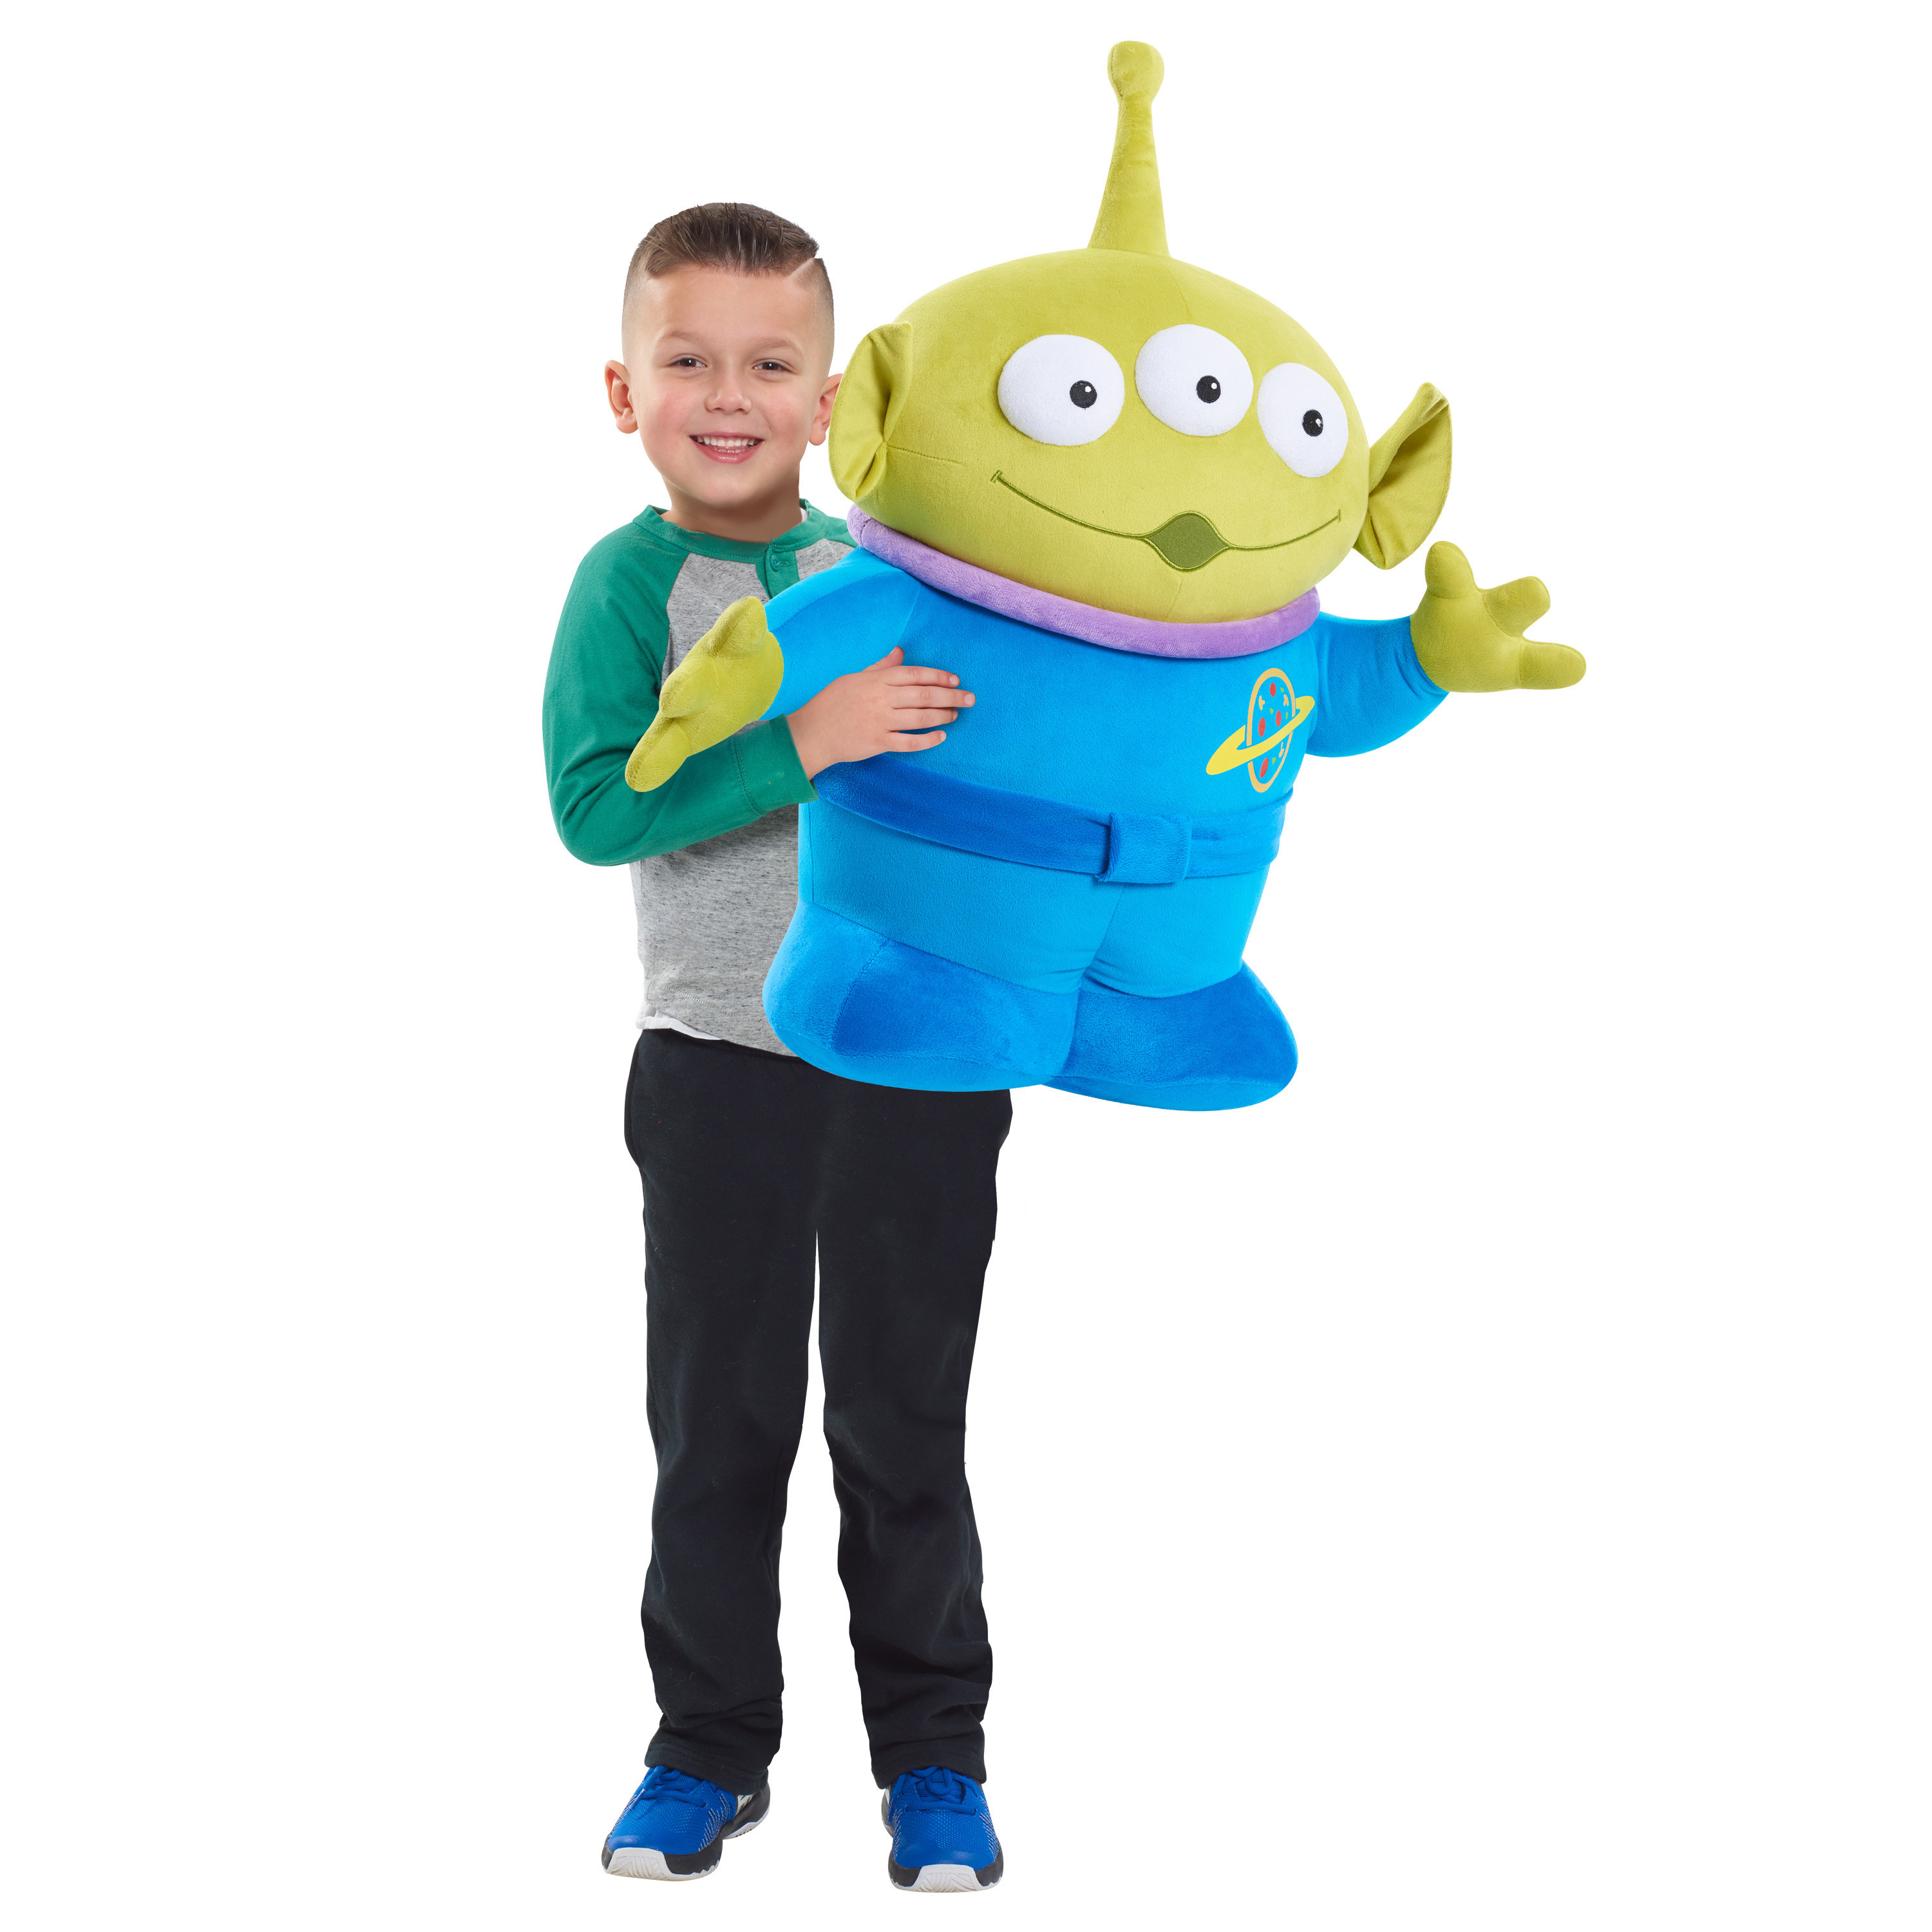 Child model holding up an oversized plush alien toy from Disney's Toy Story 4